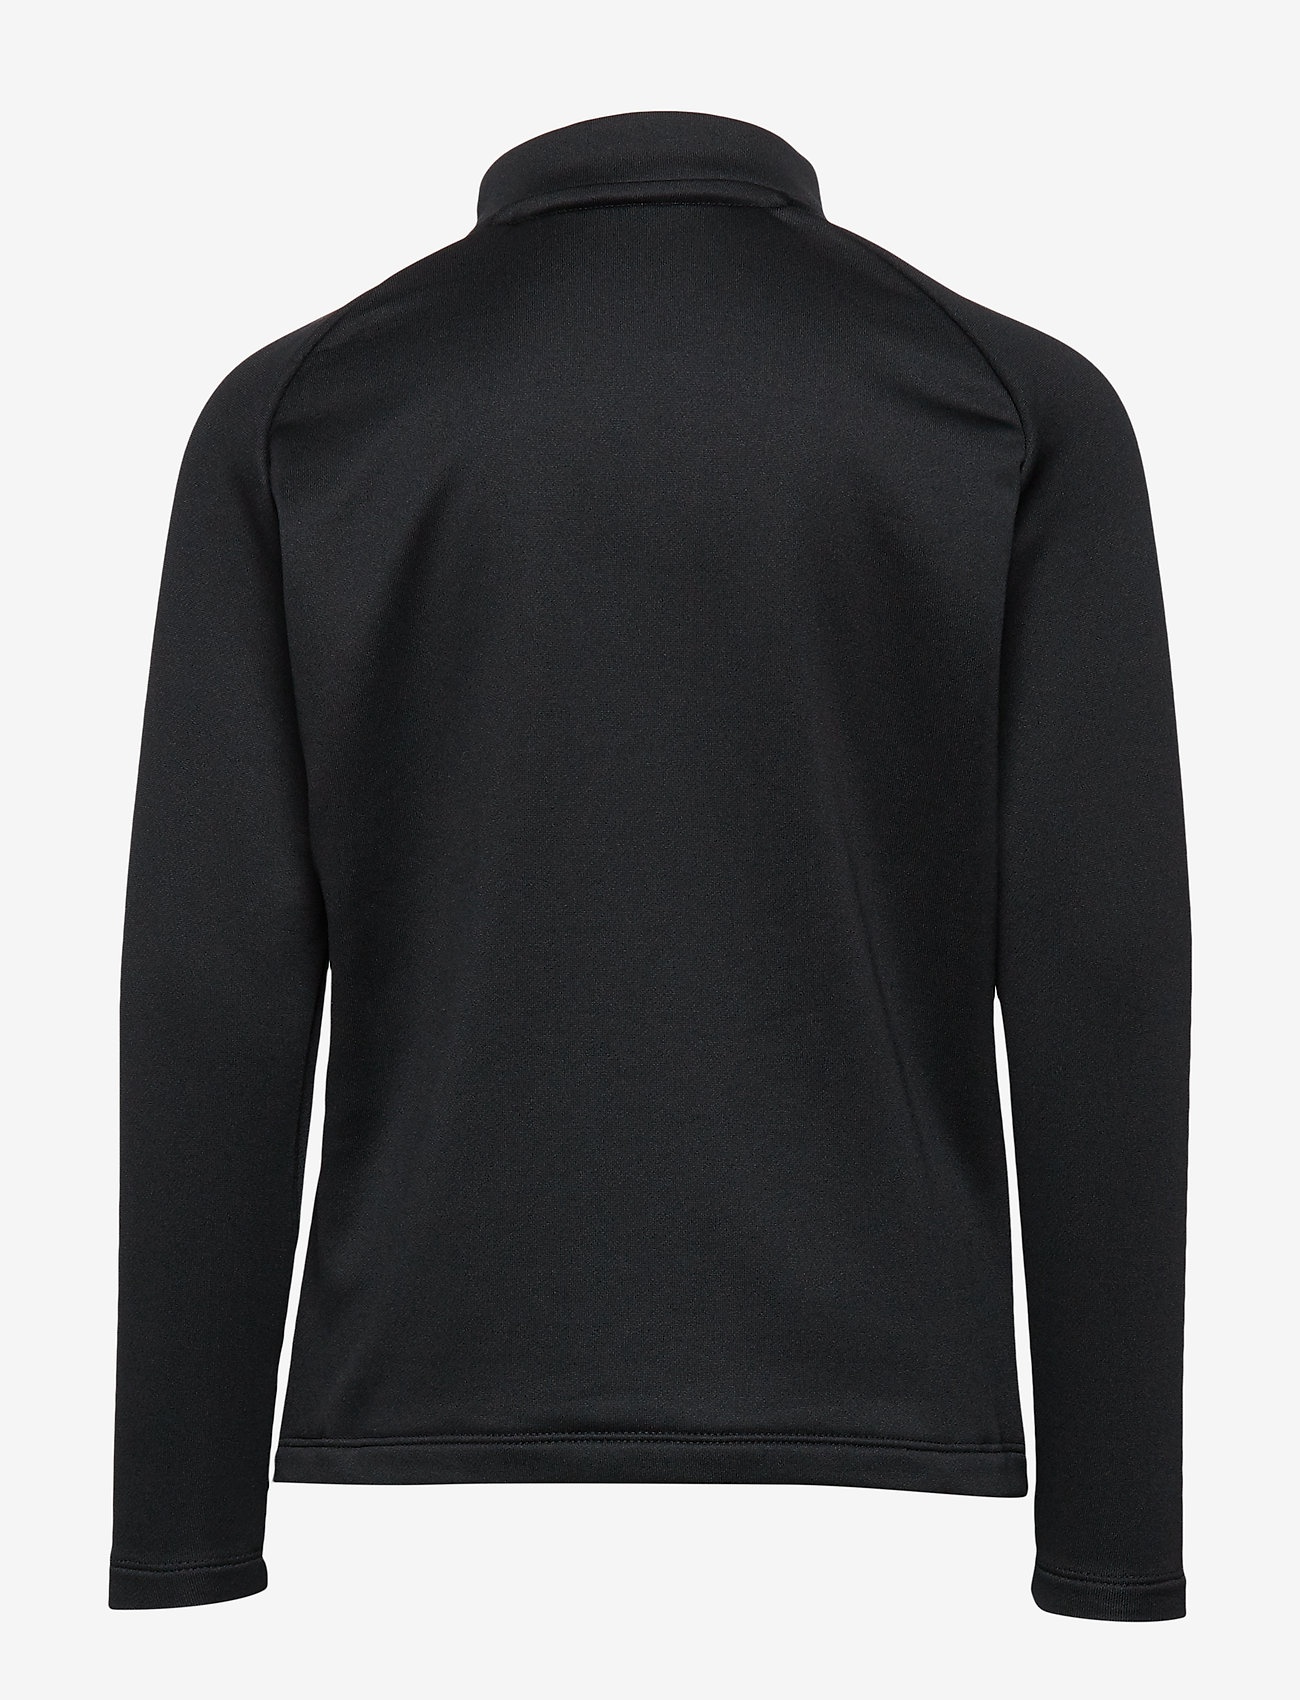 New Balance - NBST CORE JUNIOR KNIT DRILL TOP - sweats - black